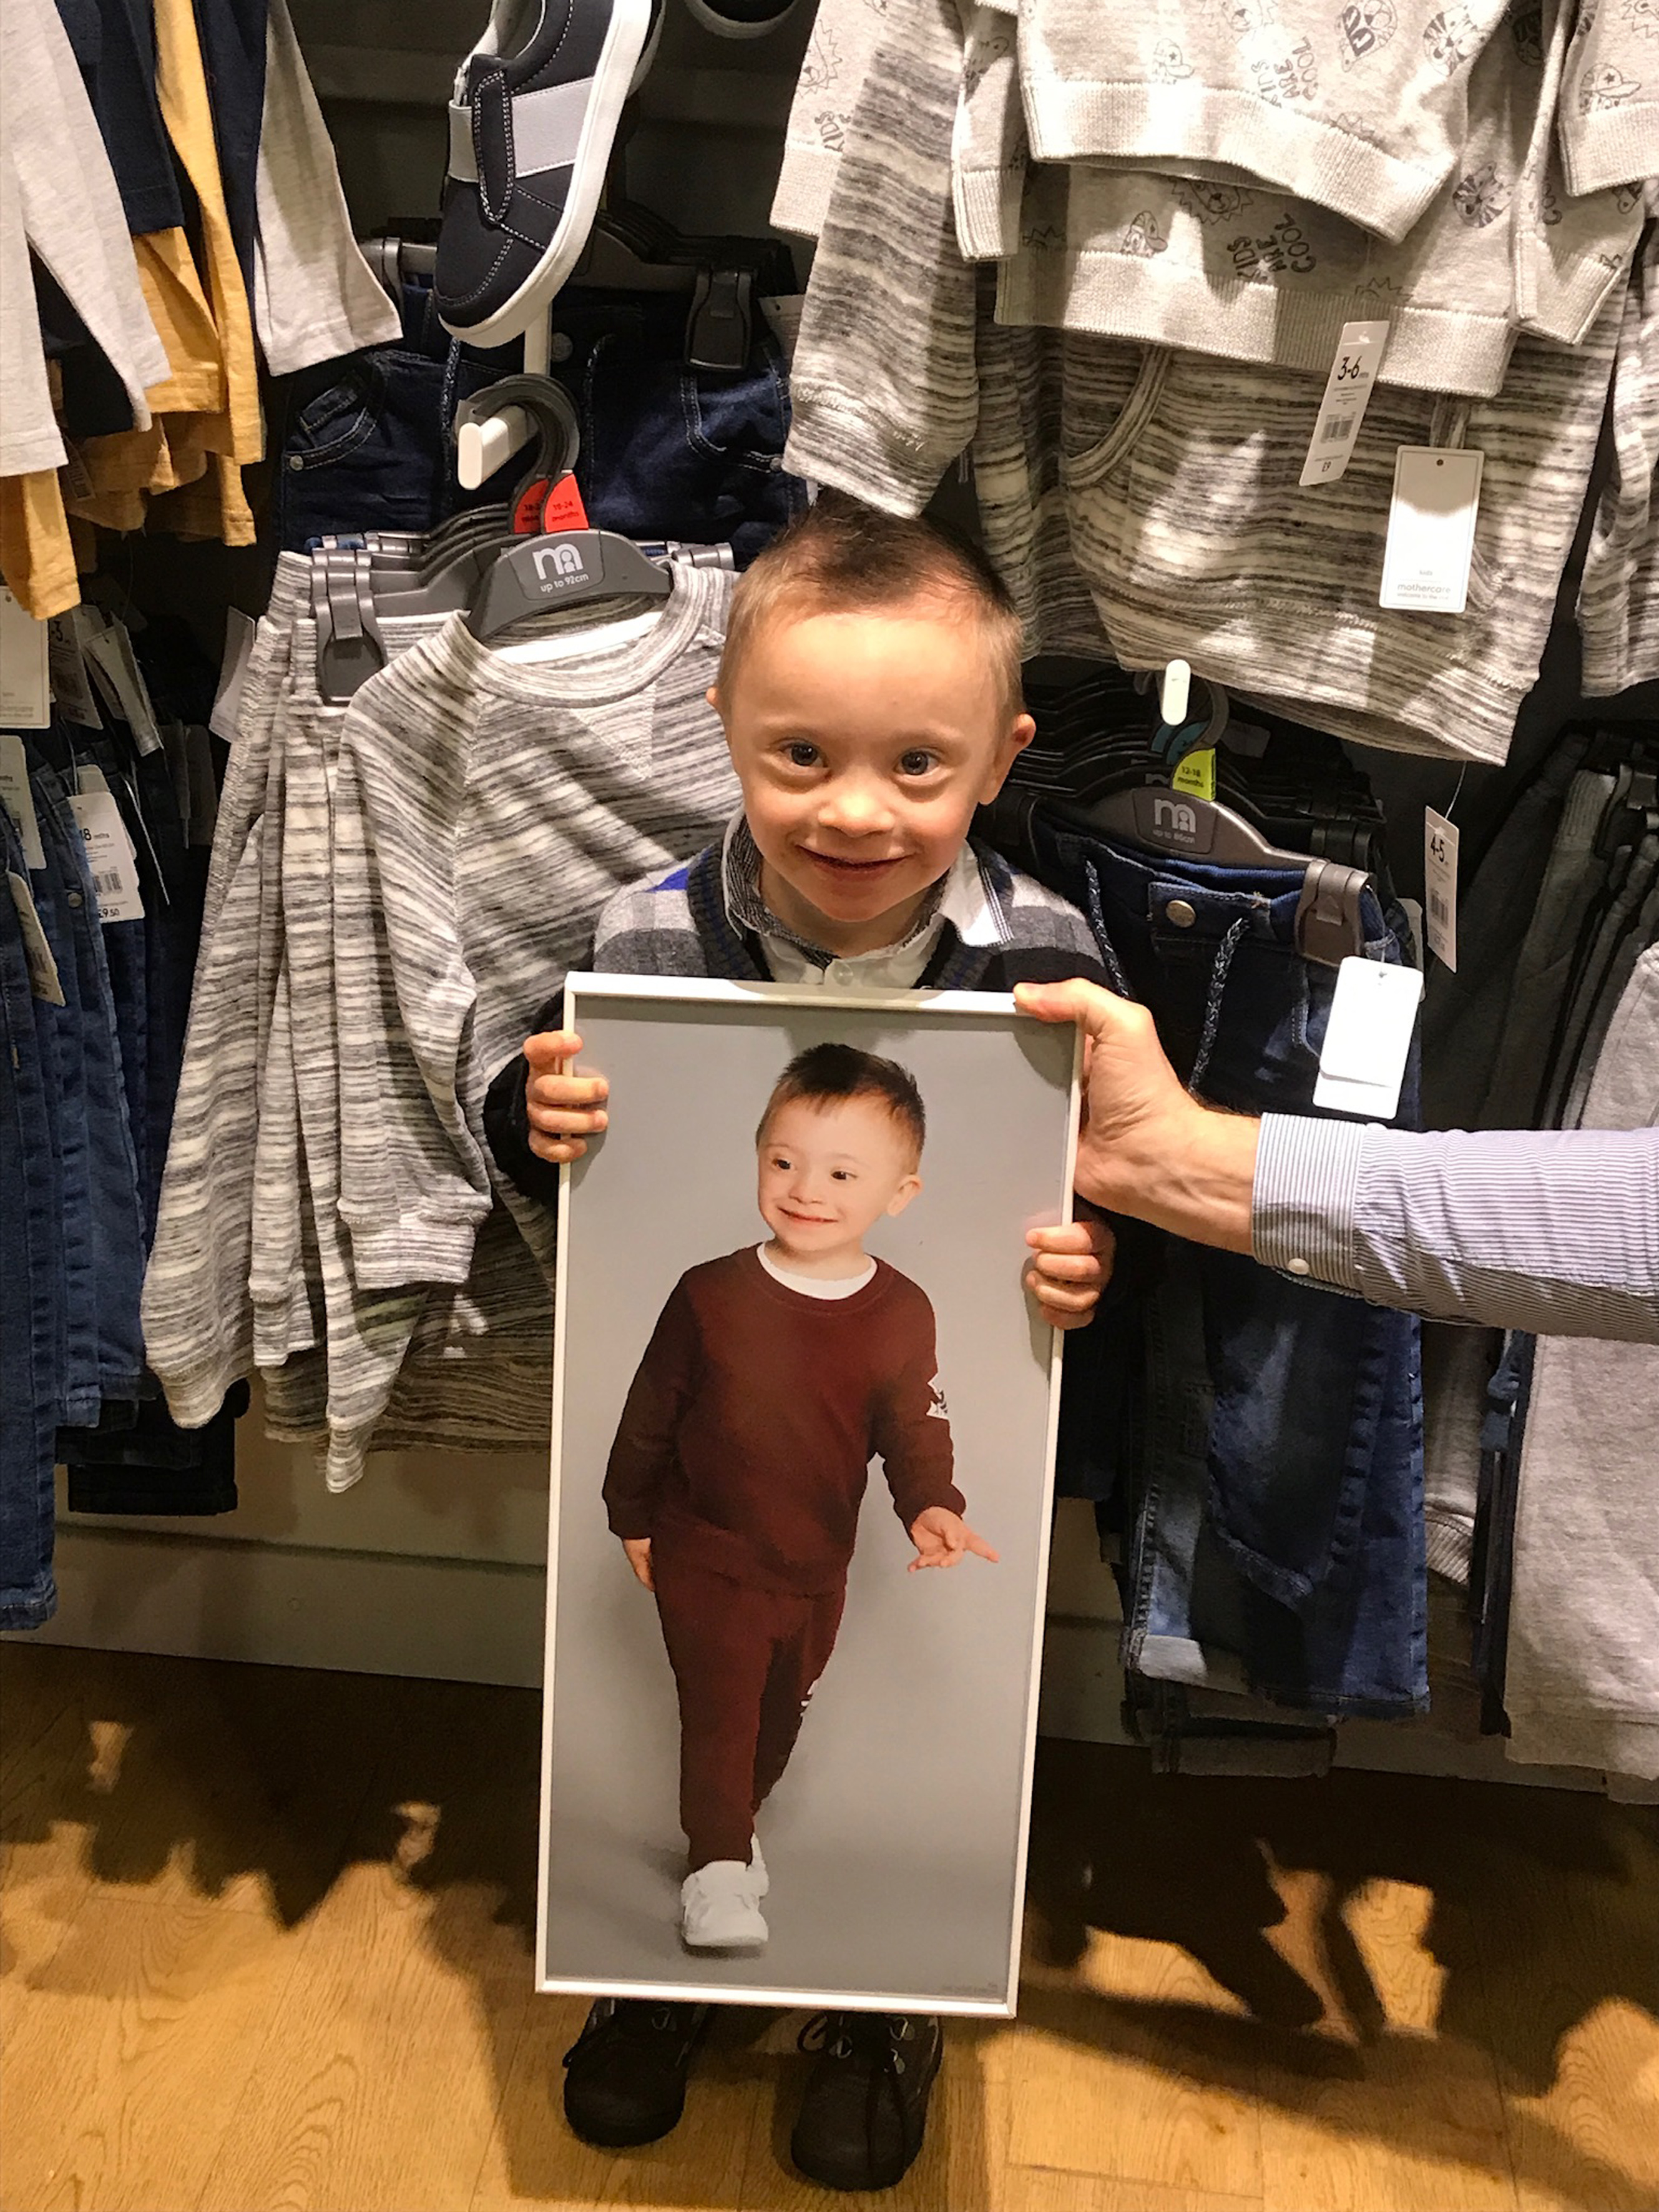 Riley proudly holding up his modelling image within a store . Credit: Caters